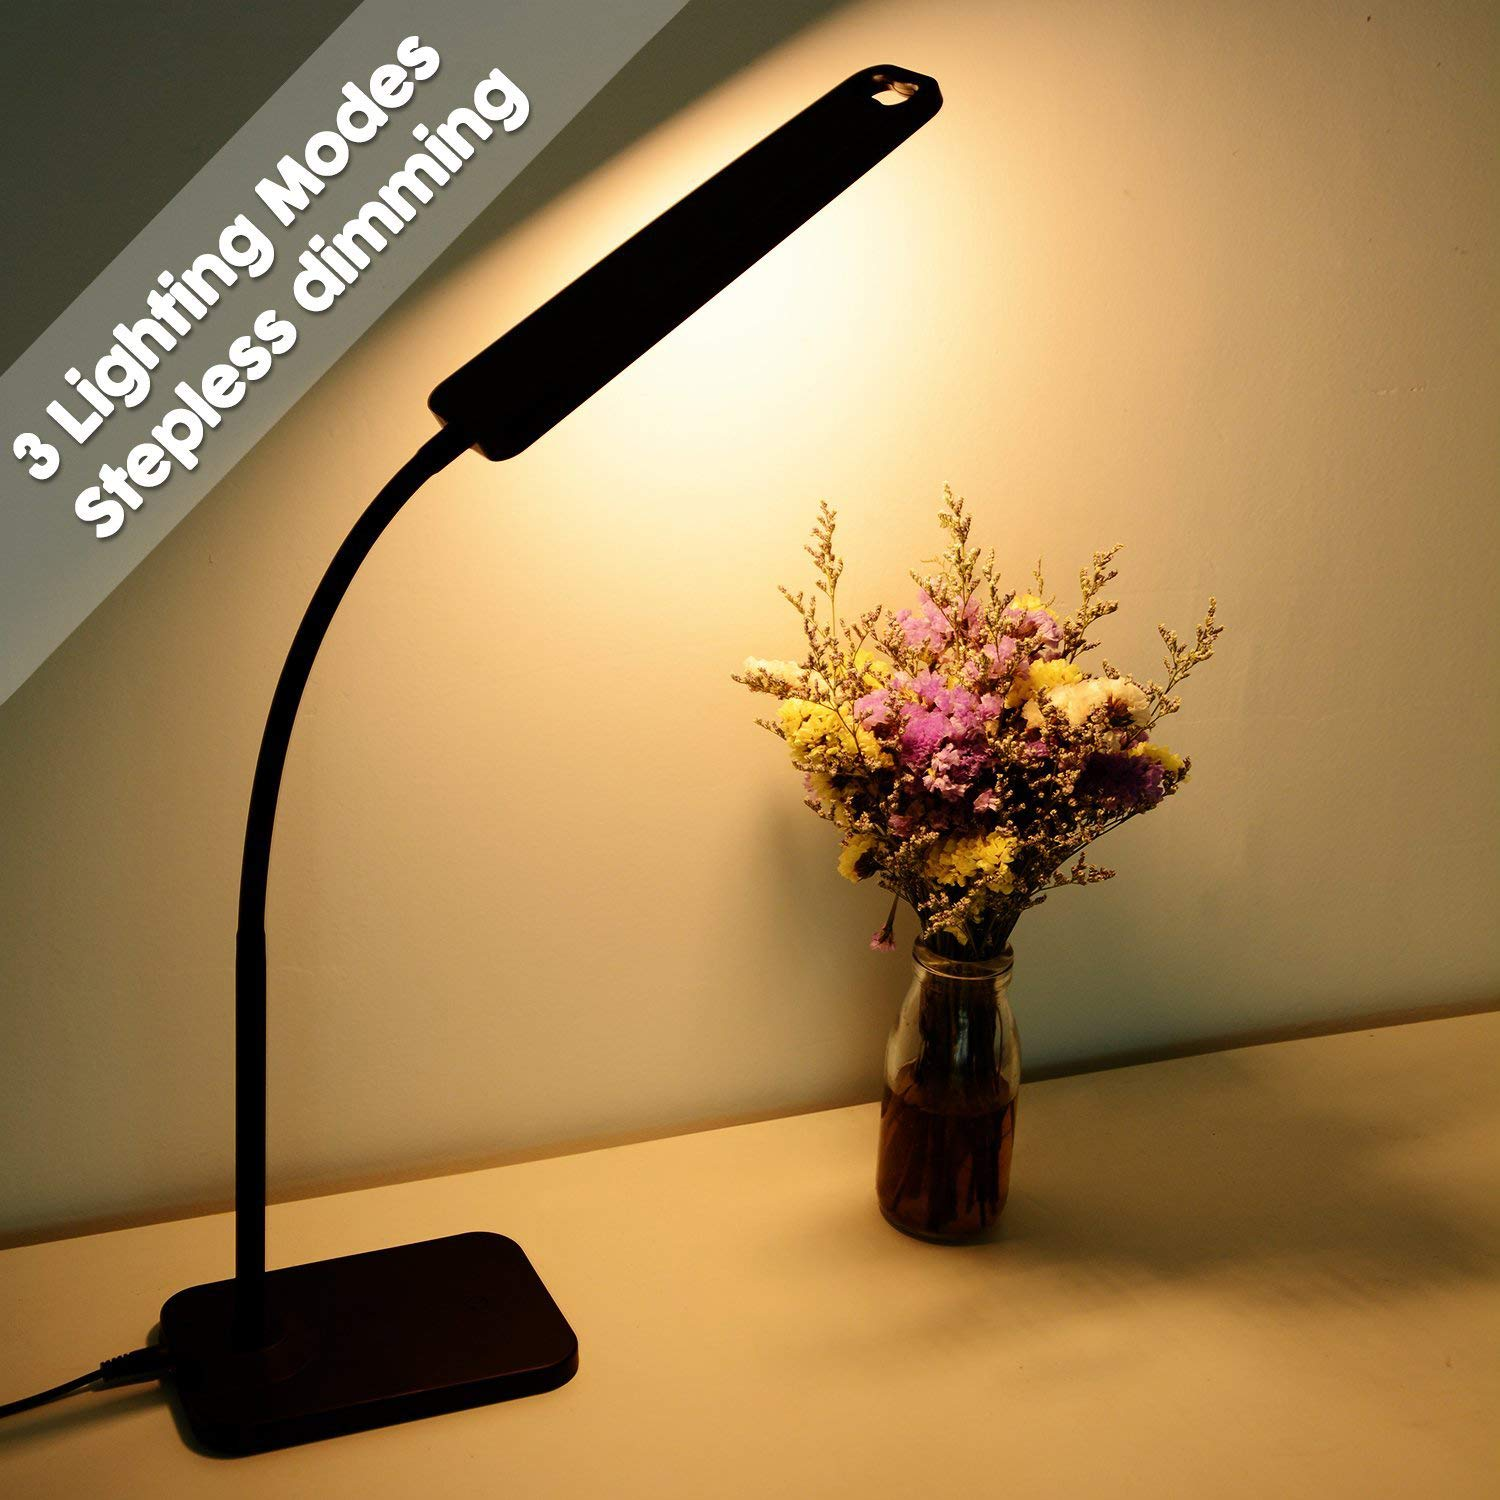 LED Desk Lamp with USB Charging Port, 1000lumen Stepless Dimming Table Lamp, Touch Control Book Light with Flexible Hose Neck